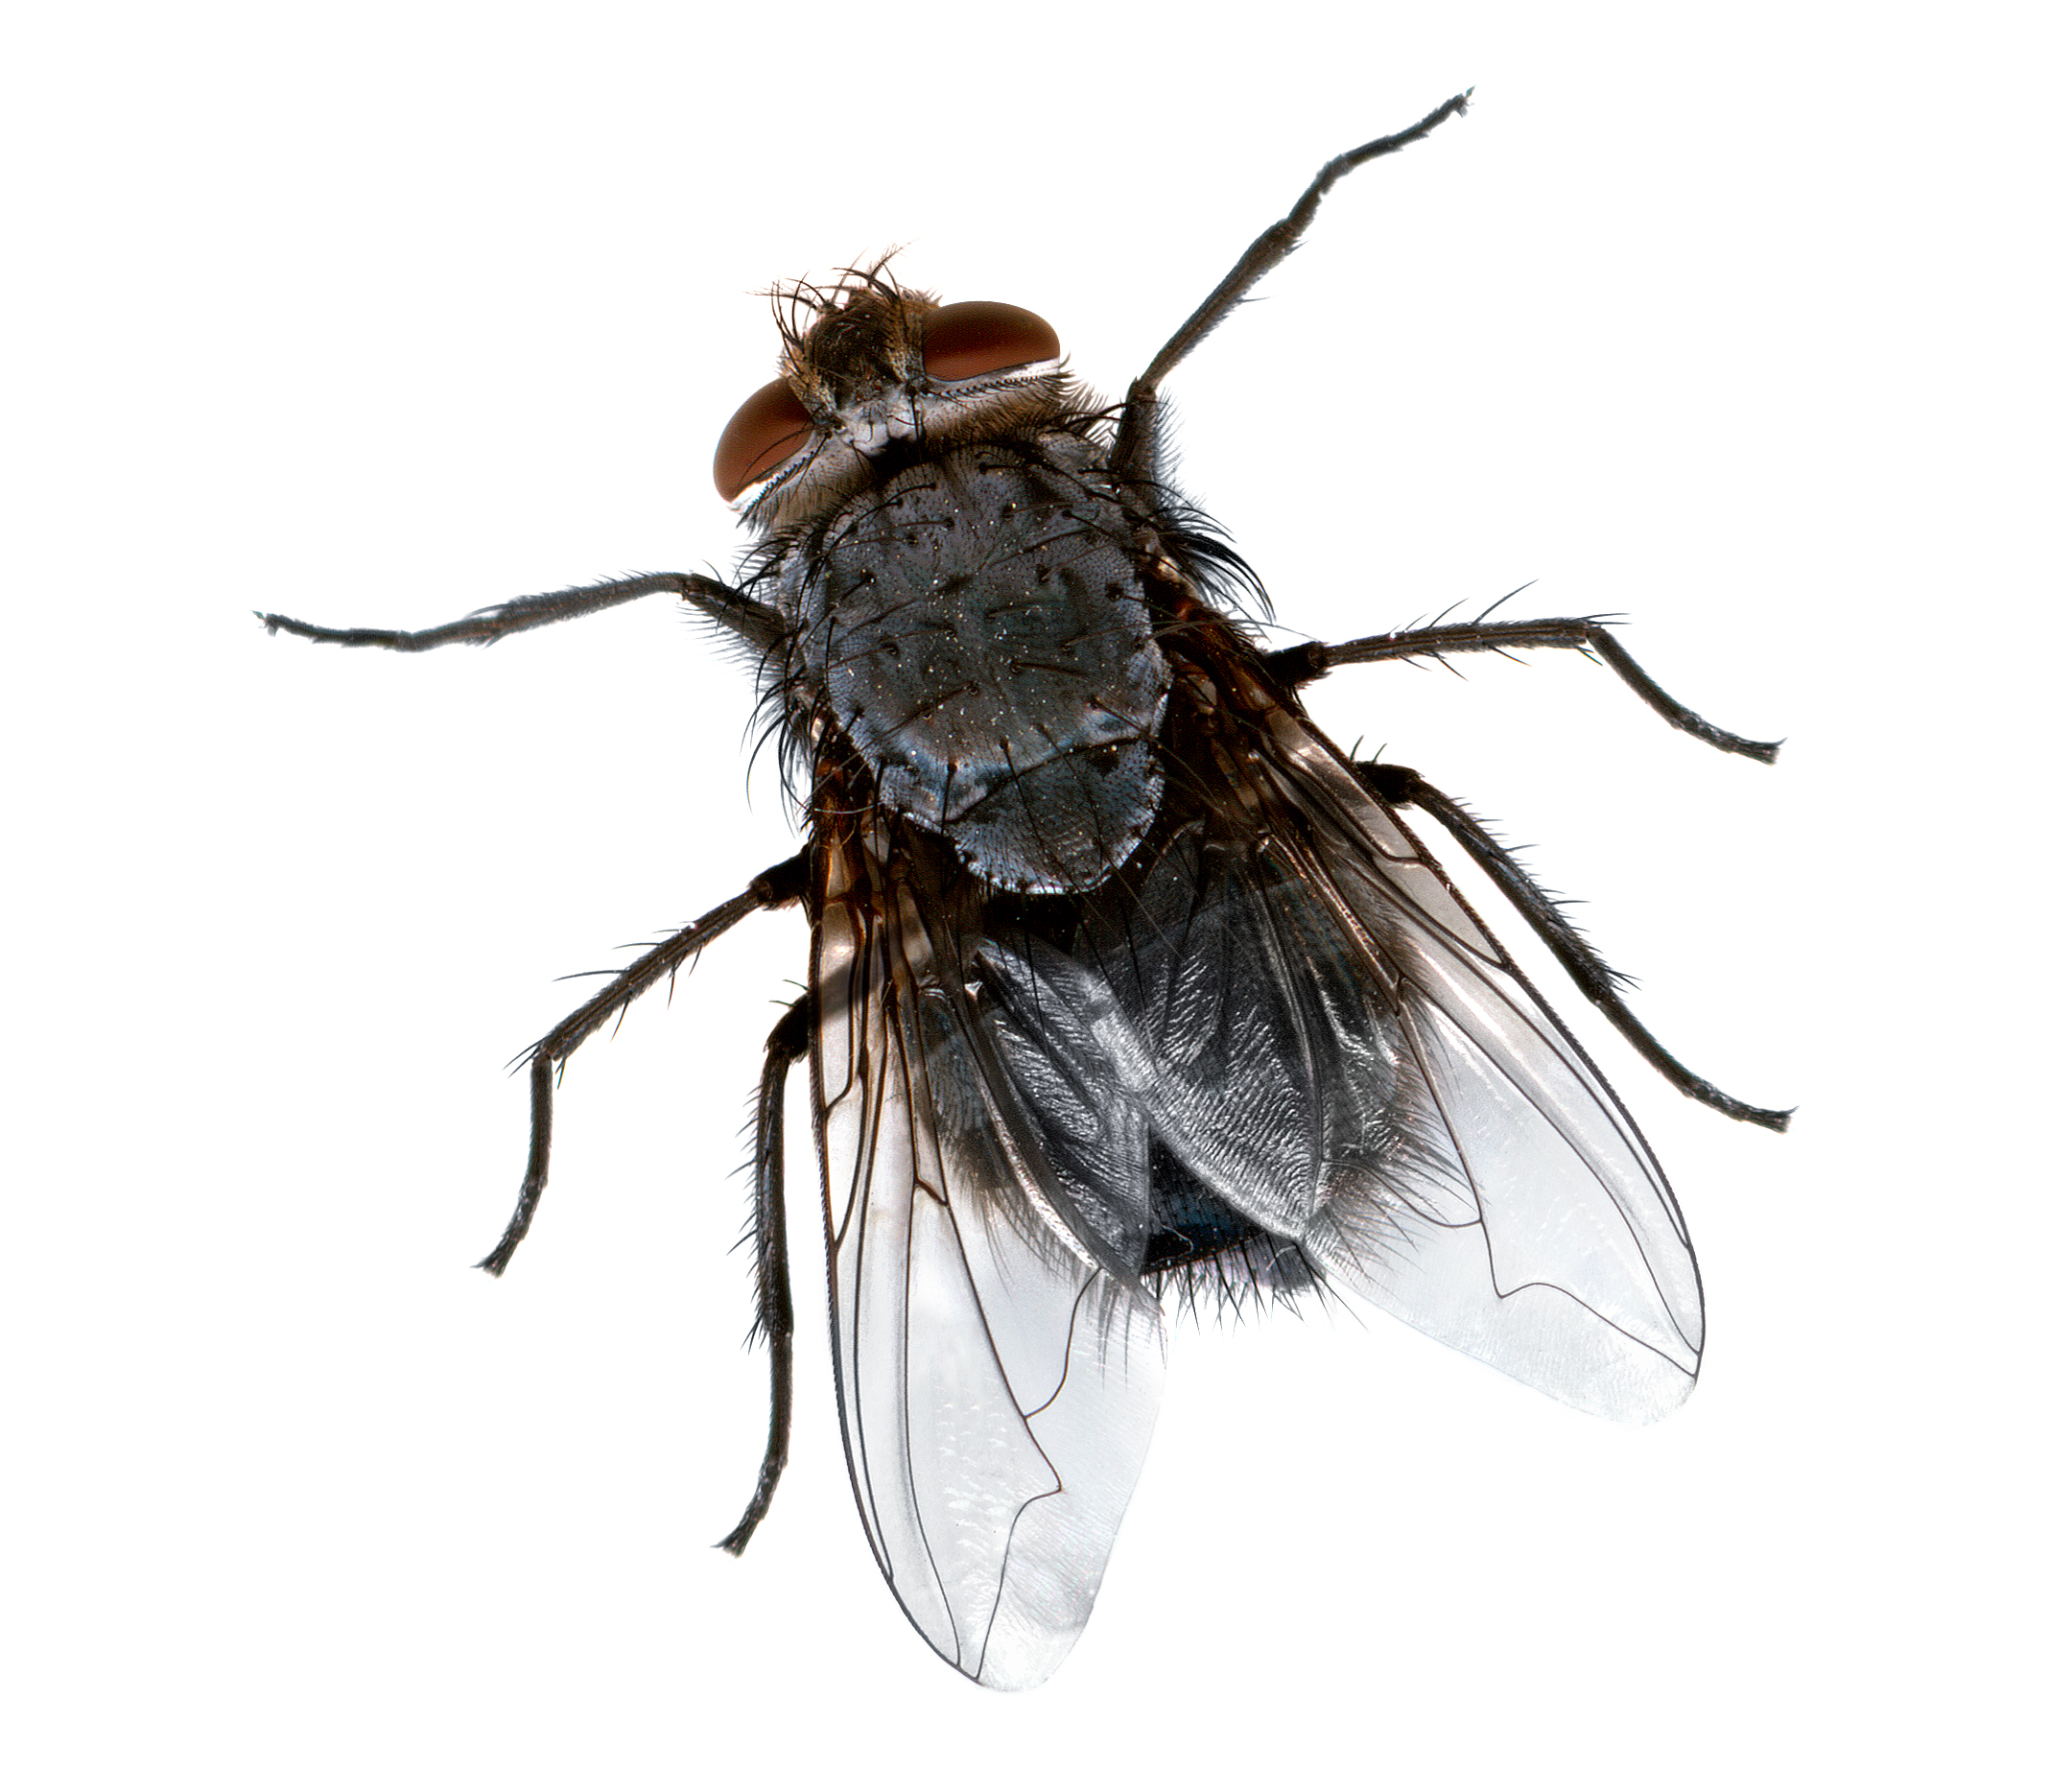 File:Fly close.jpg - Wikimedia Commons